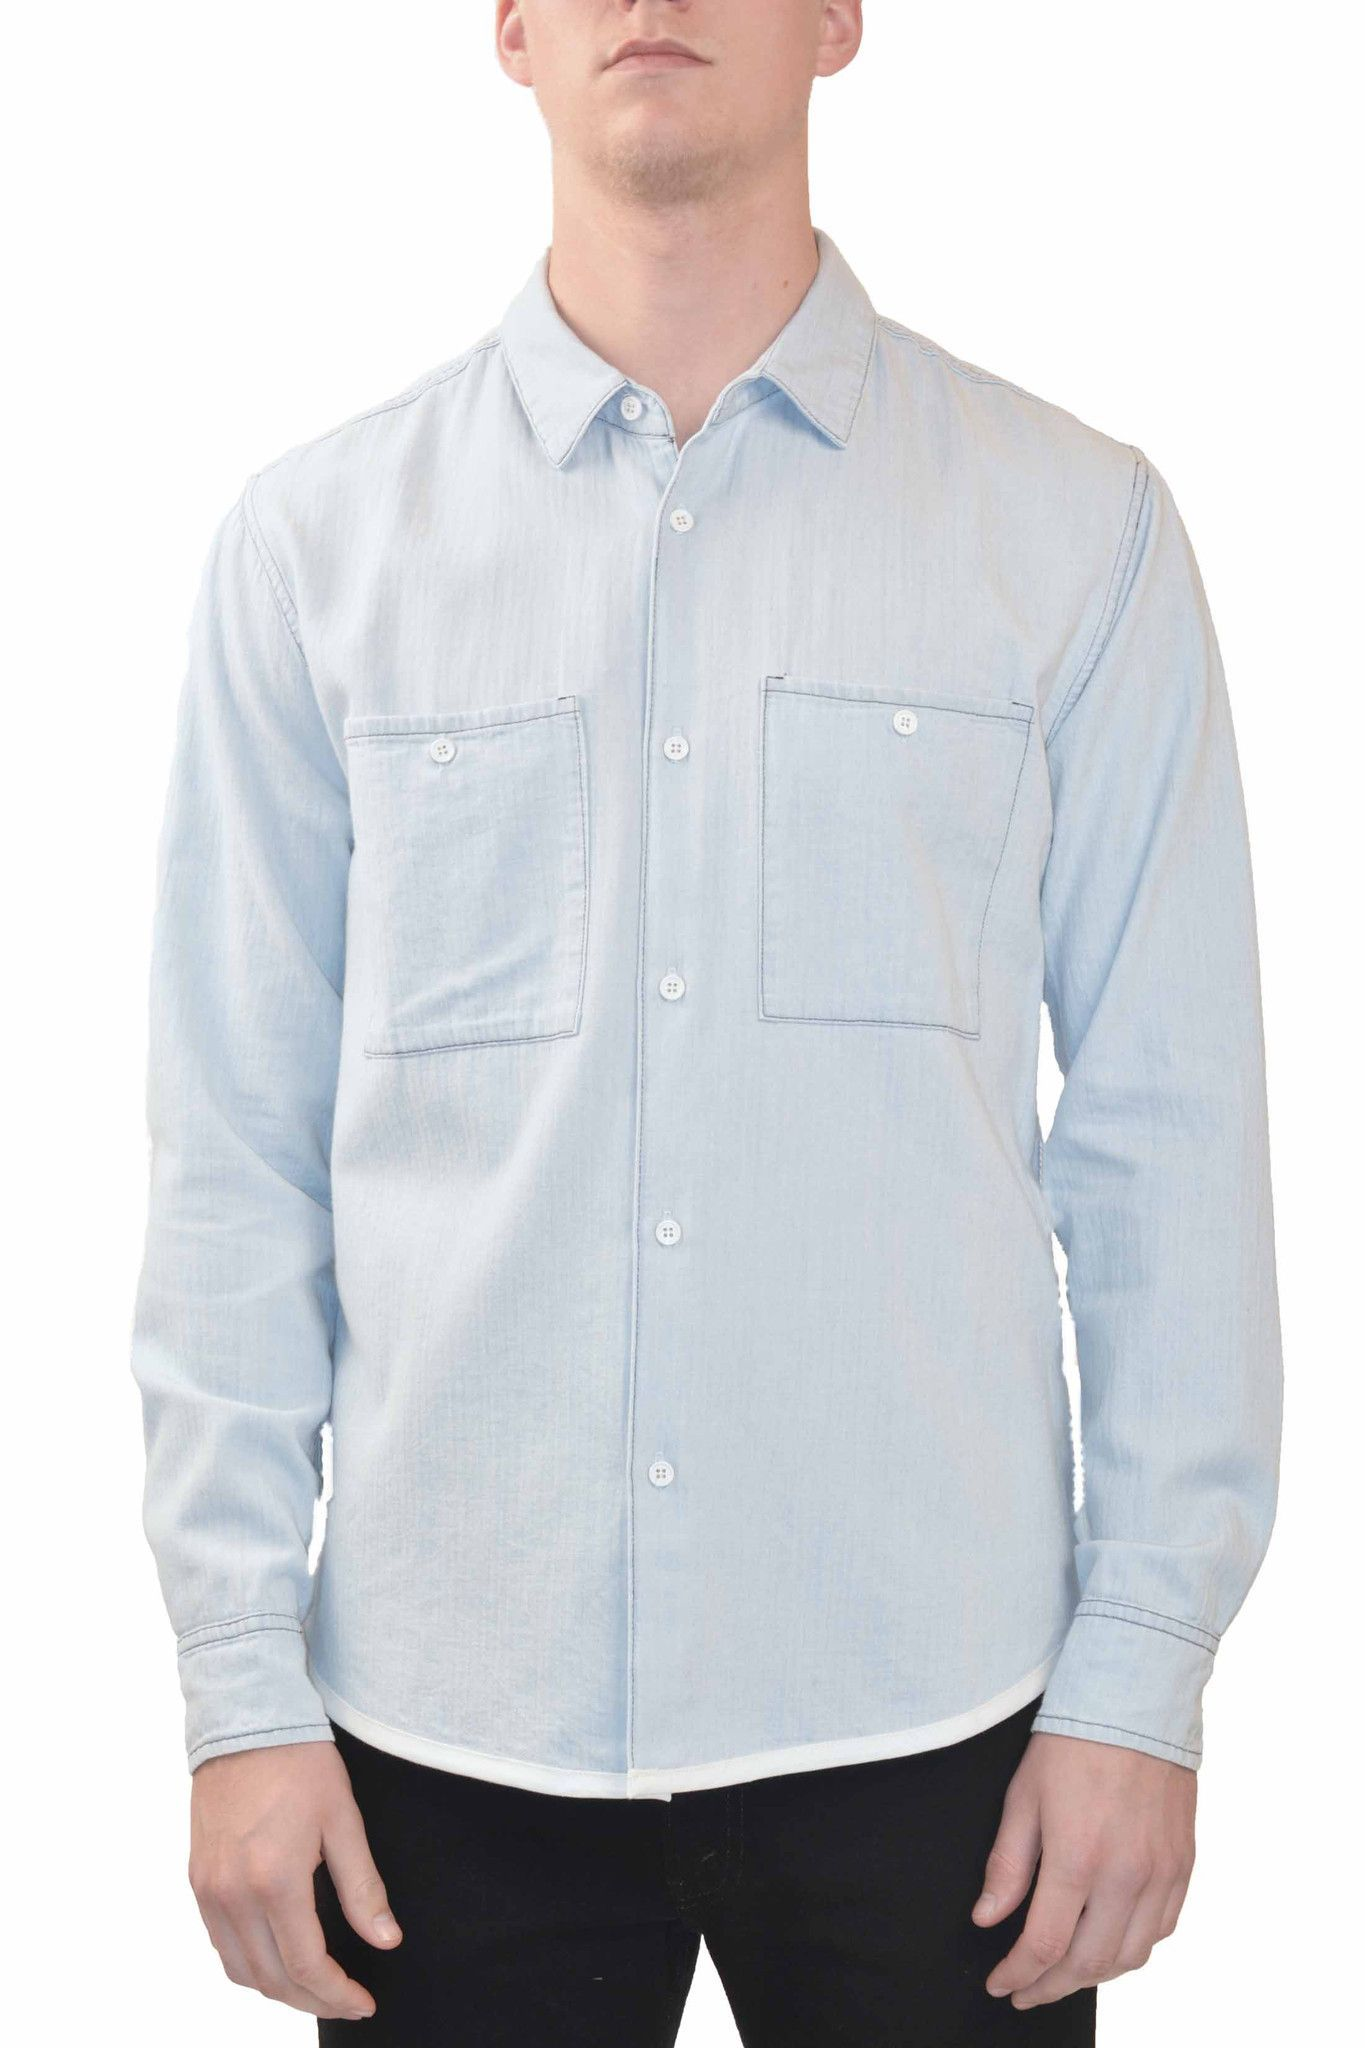 CWST Washed Chambray Button Down Shirt